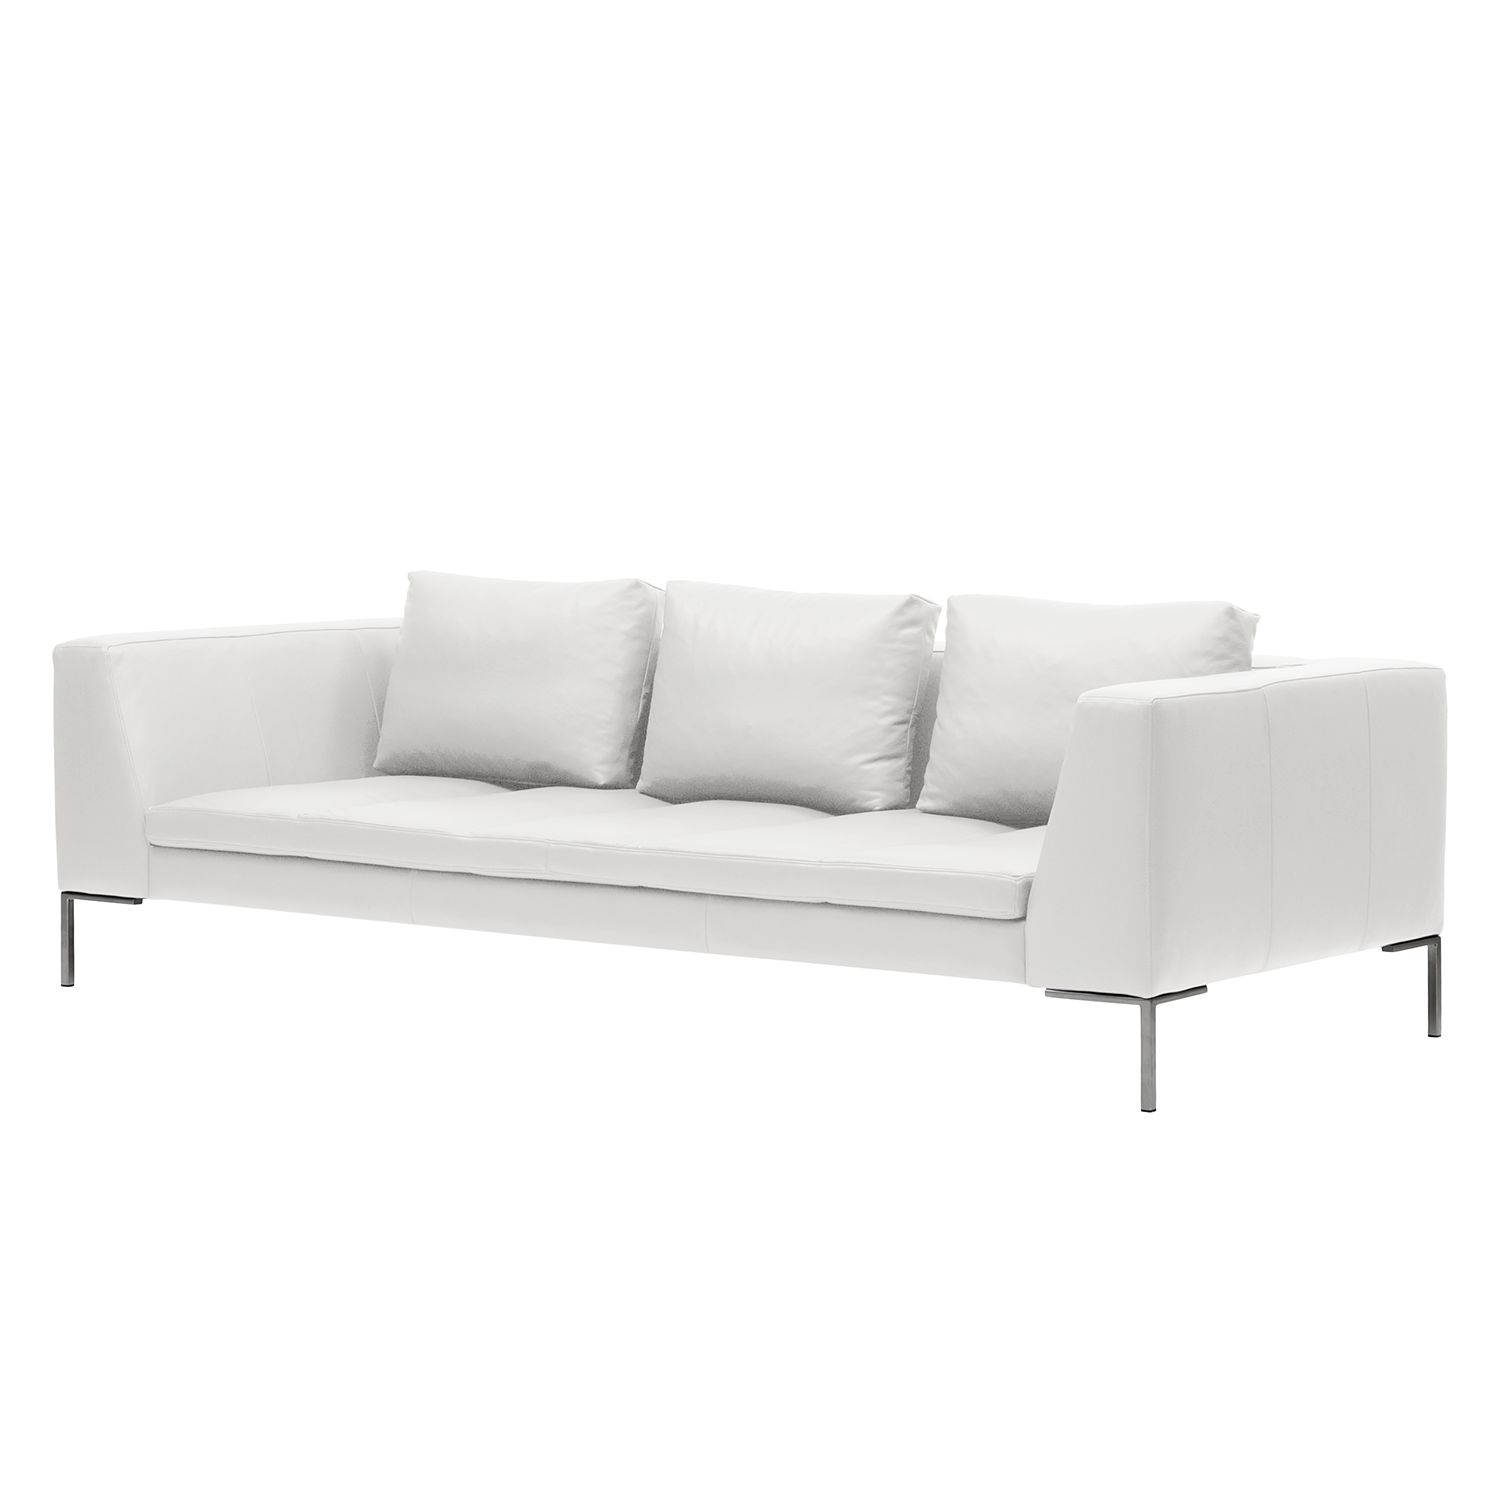 sofa madison 3 sitzer echtleder wei studio copenhagen g nstig kaufen. Black Bedroom Furniture Sets. Home Design Ideas